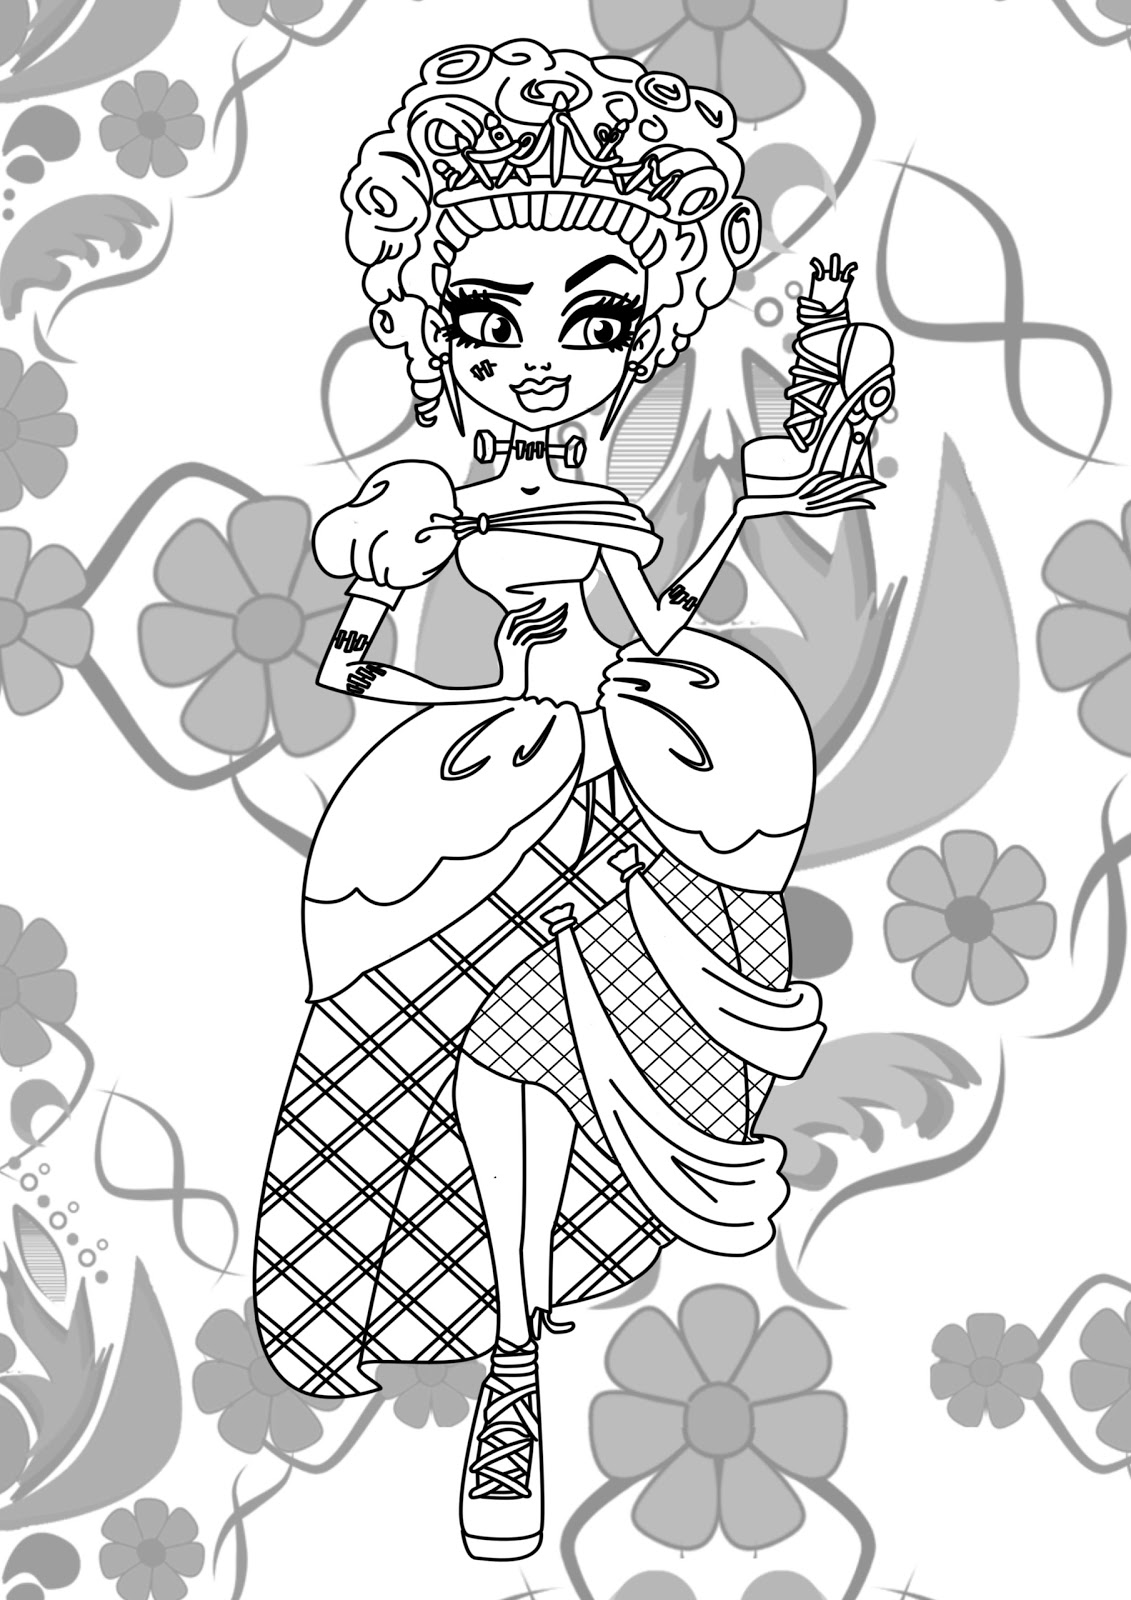 monster high colouring sheet monster high clawdeen wolf coloring pages team colors sheet colouring high monster